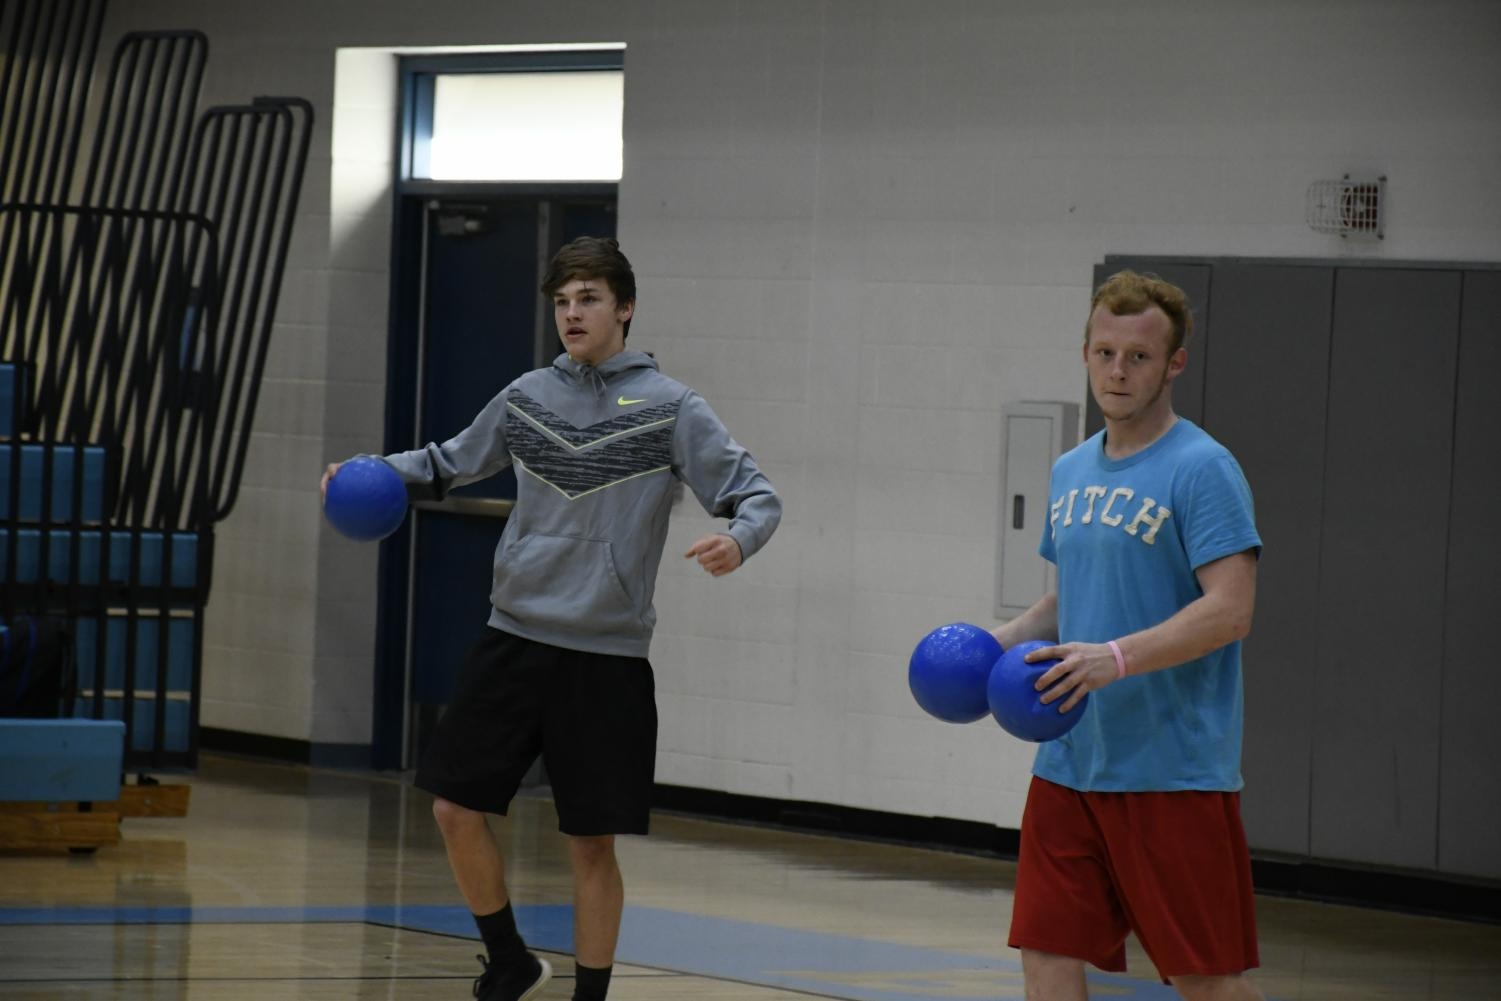 Seniors Trevor Miller (LEFT) and Hunter Freeman compete in the National Honor Society's annual dodgeball tournament in the Boone gym on March 22. The event raised money for the organization.